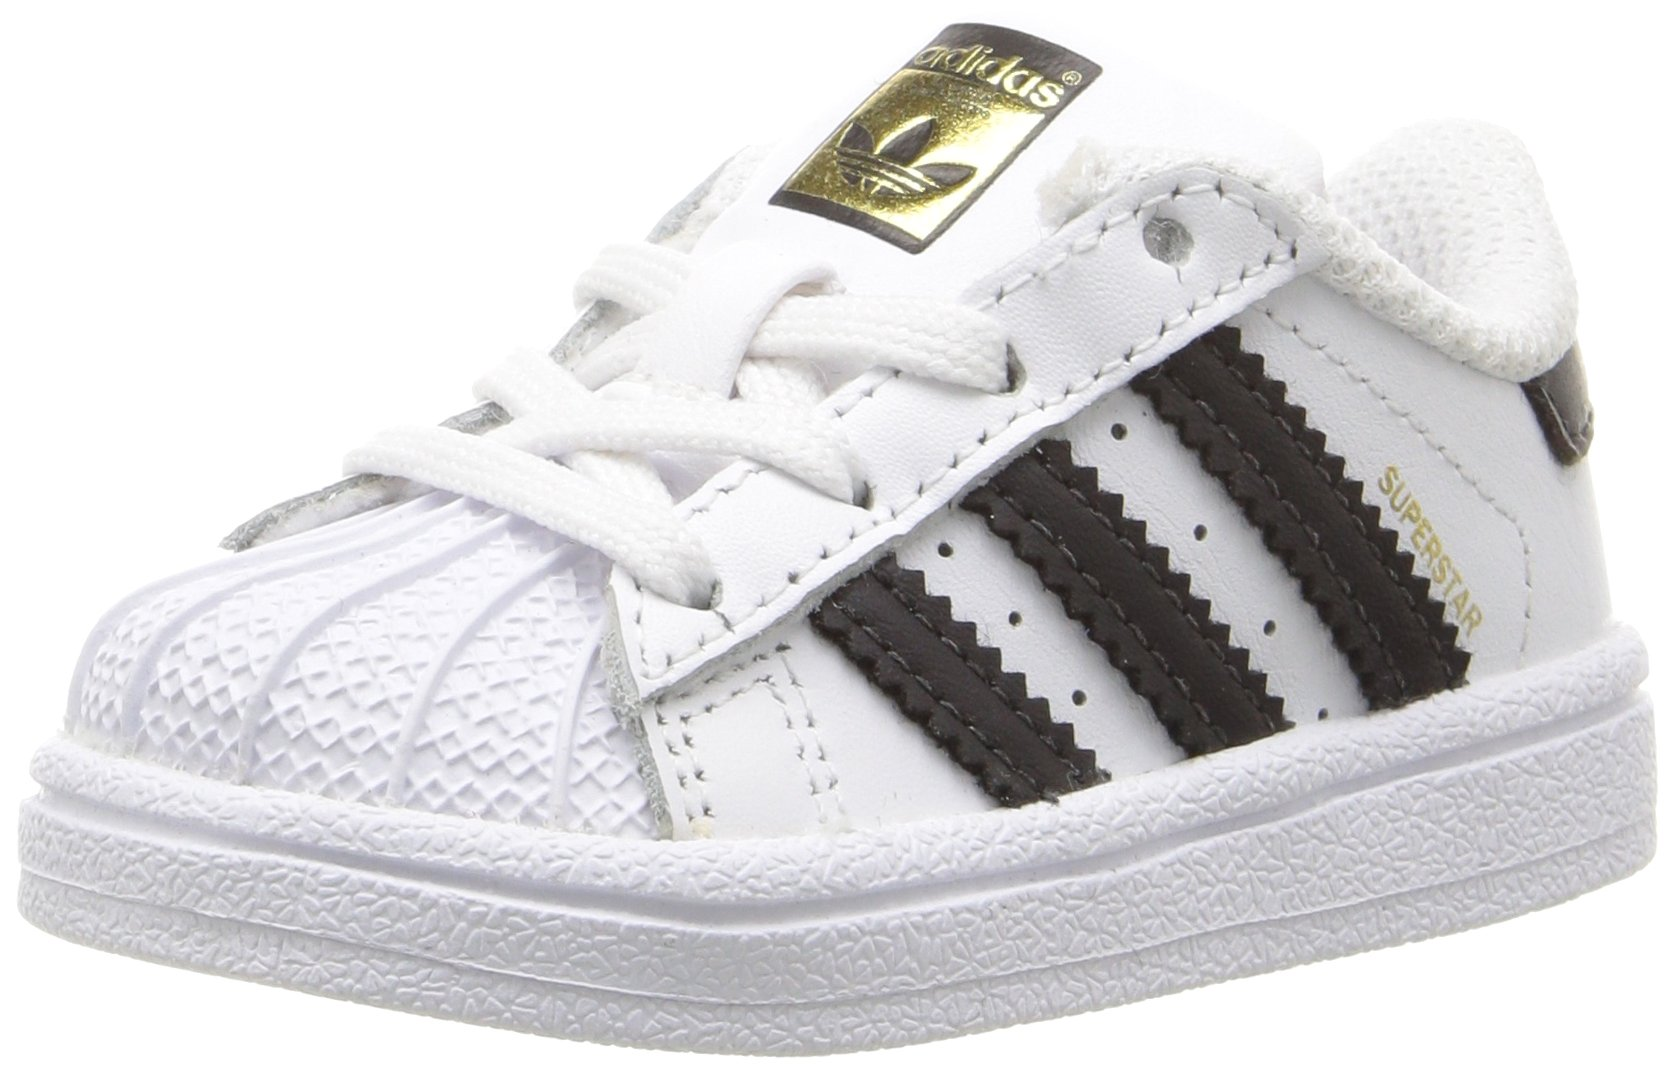 adidas Originals Boys' Superstar I Sneaker Black/White, 7 M US Toddler